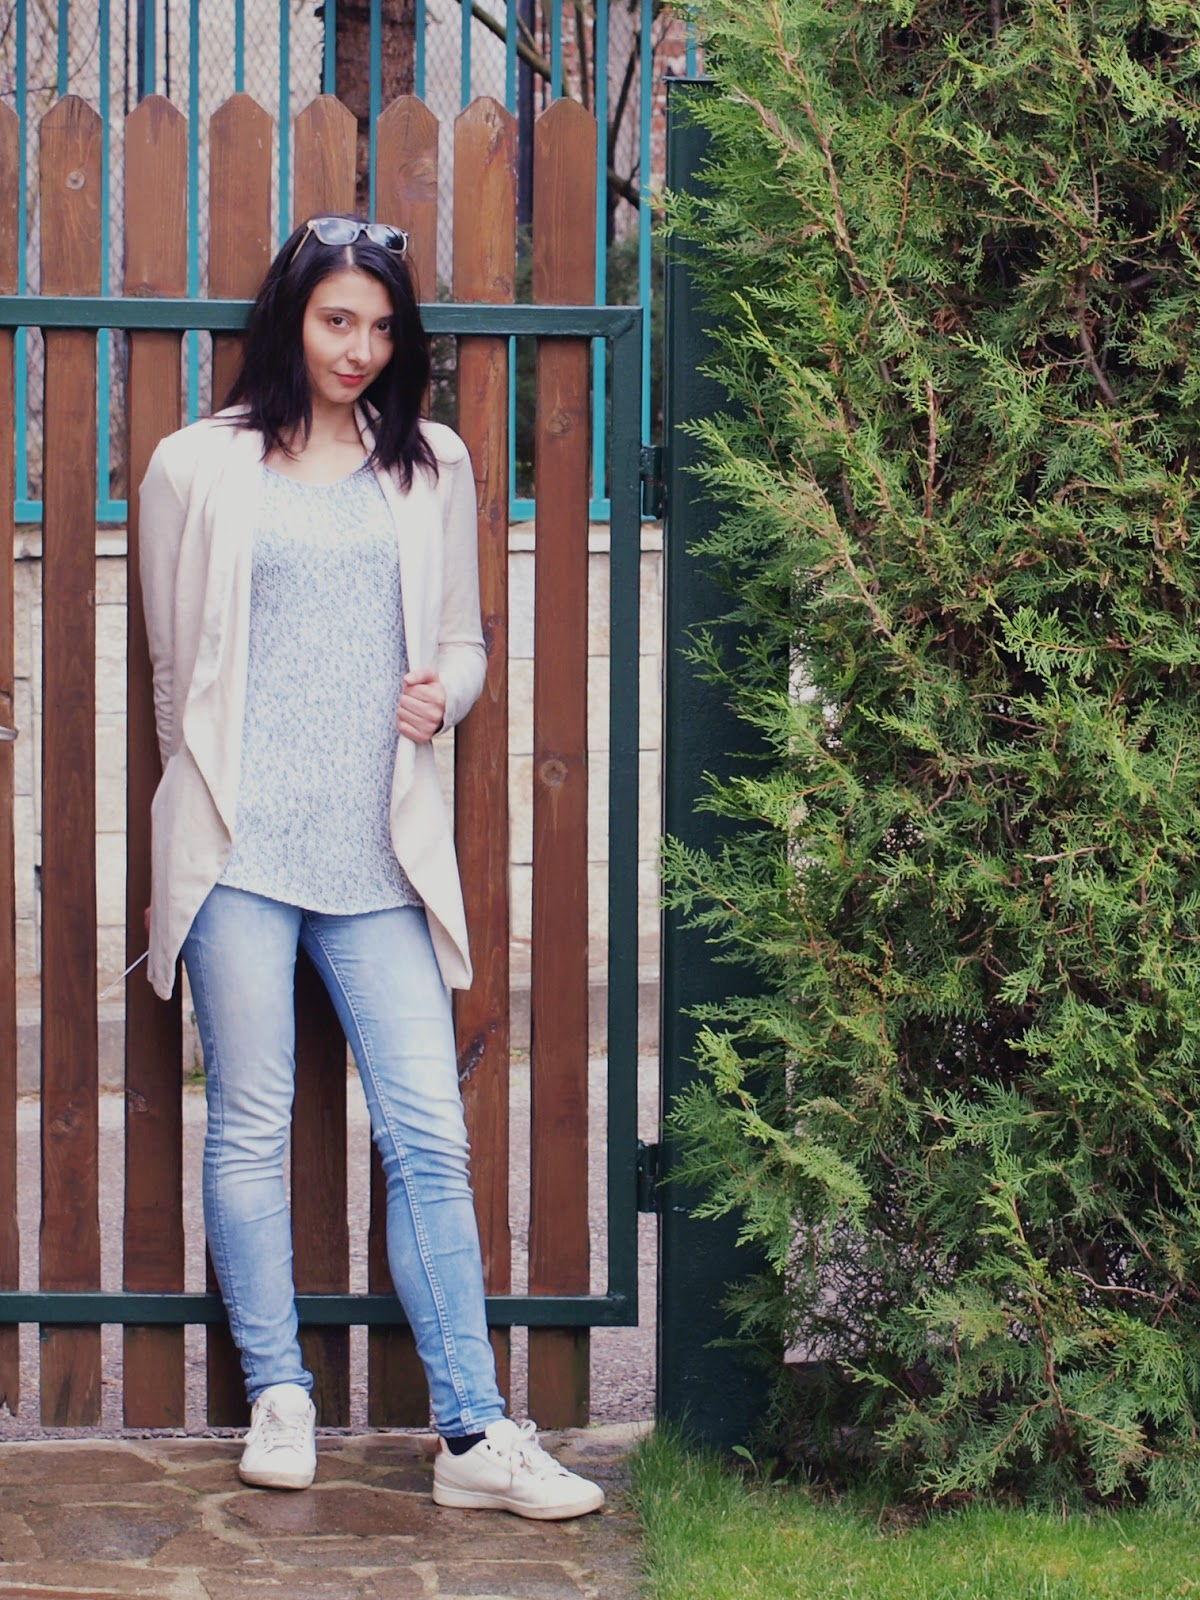 Spring comfy outfit idea